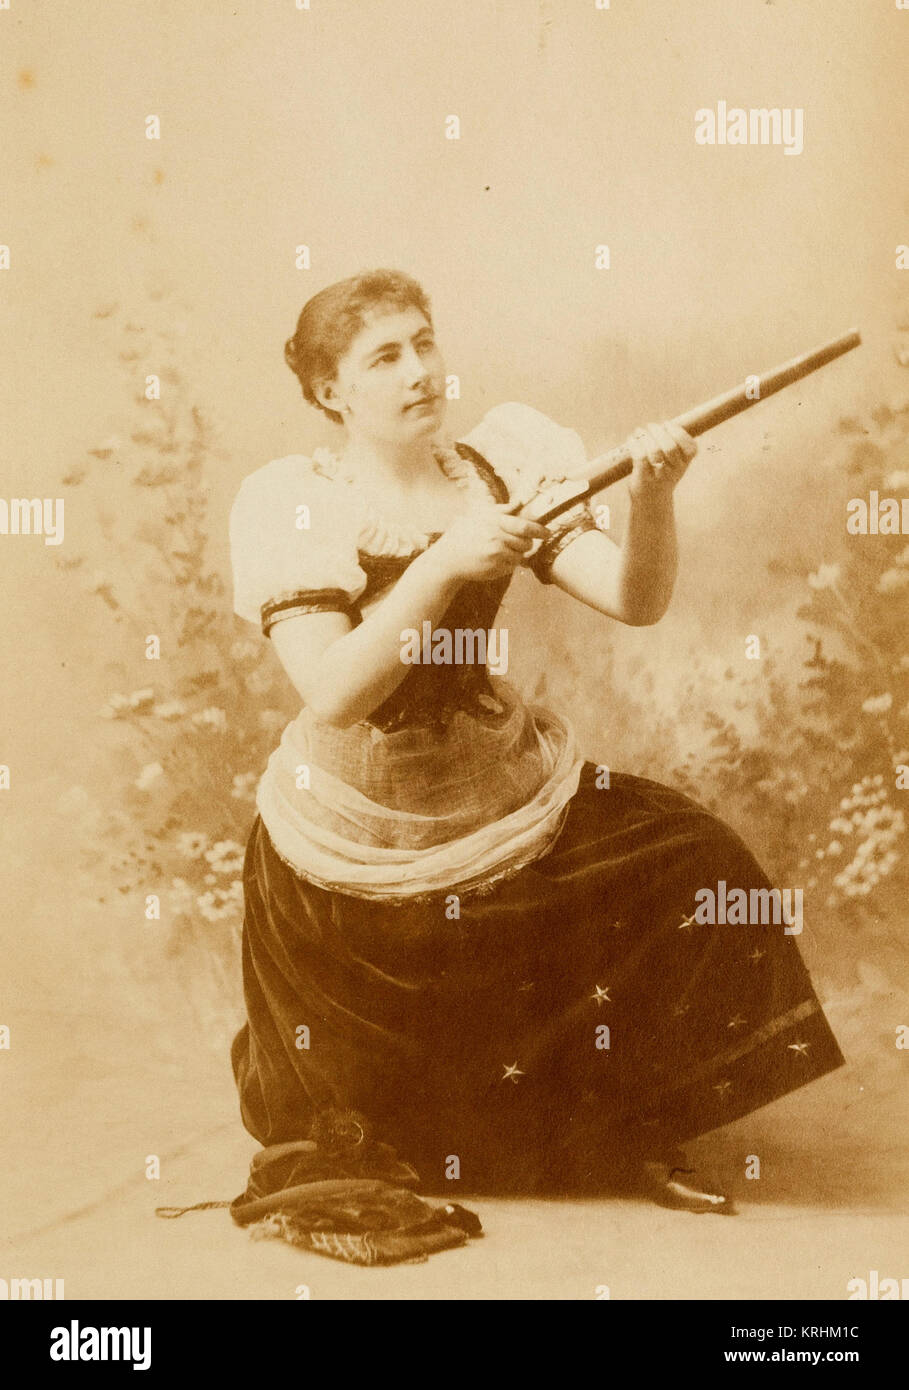 Cowgirl Poses With Rifle As A Supposed Sharpshooter - Stock Image